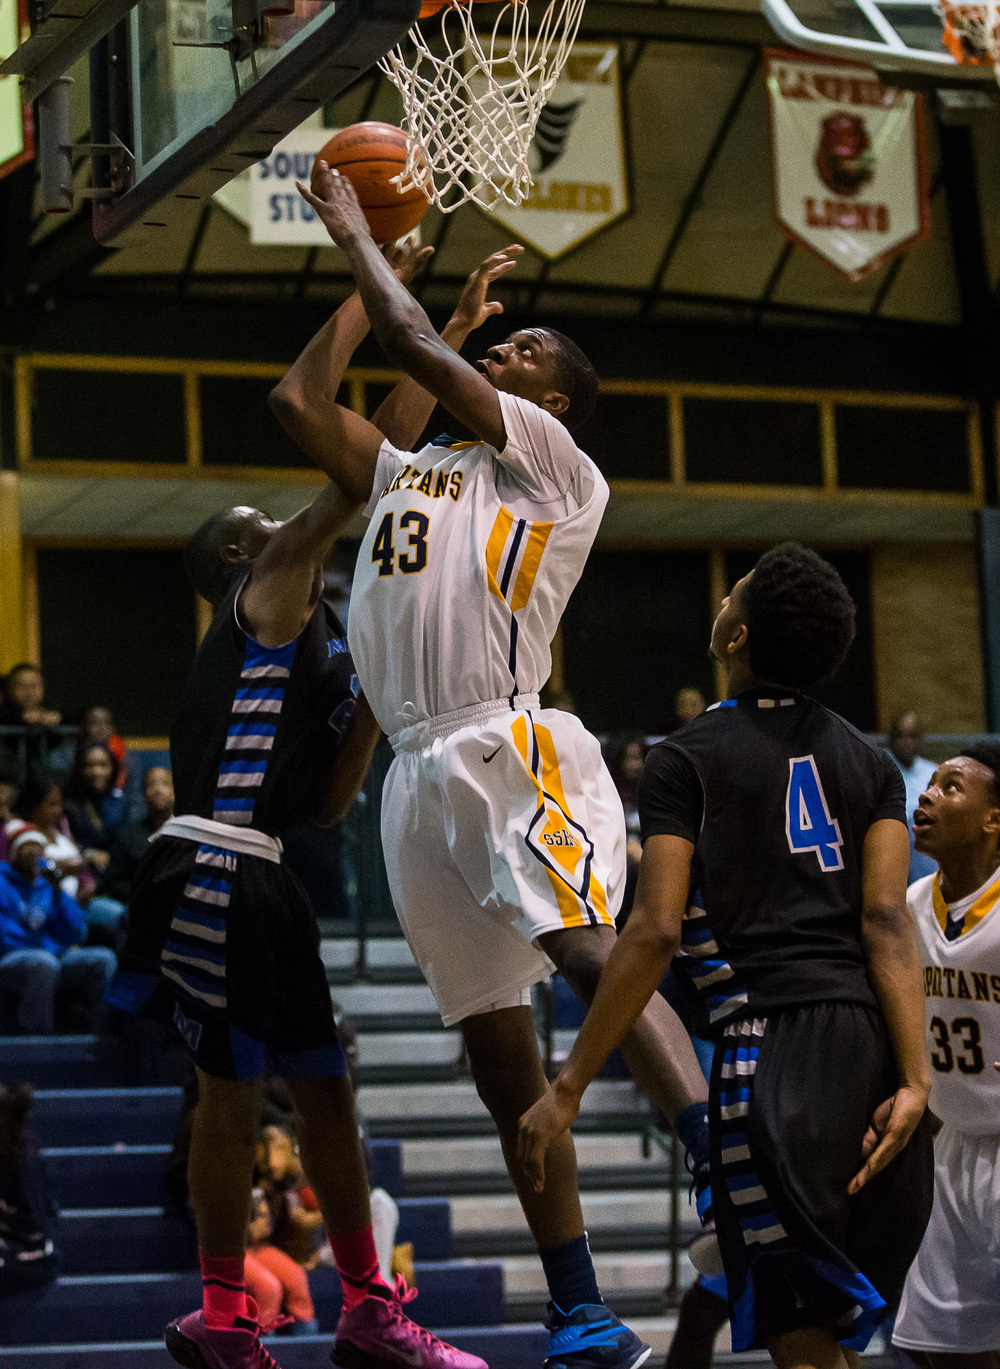 Southeast's Darius Ousley (43) goes up for a basket against Decatur MacArthur's Amir Brummett (25) in the second half at Southeast High School, Friday, Feb. 13, 2015, in Springfield, Ill. Justin L. Fowler/The State Journal-Register